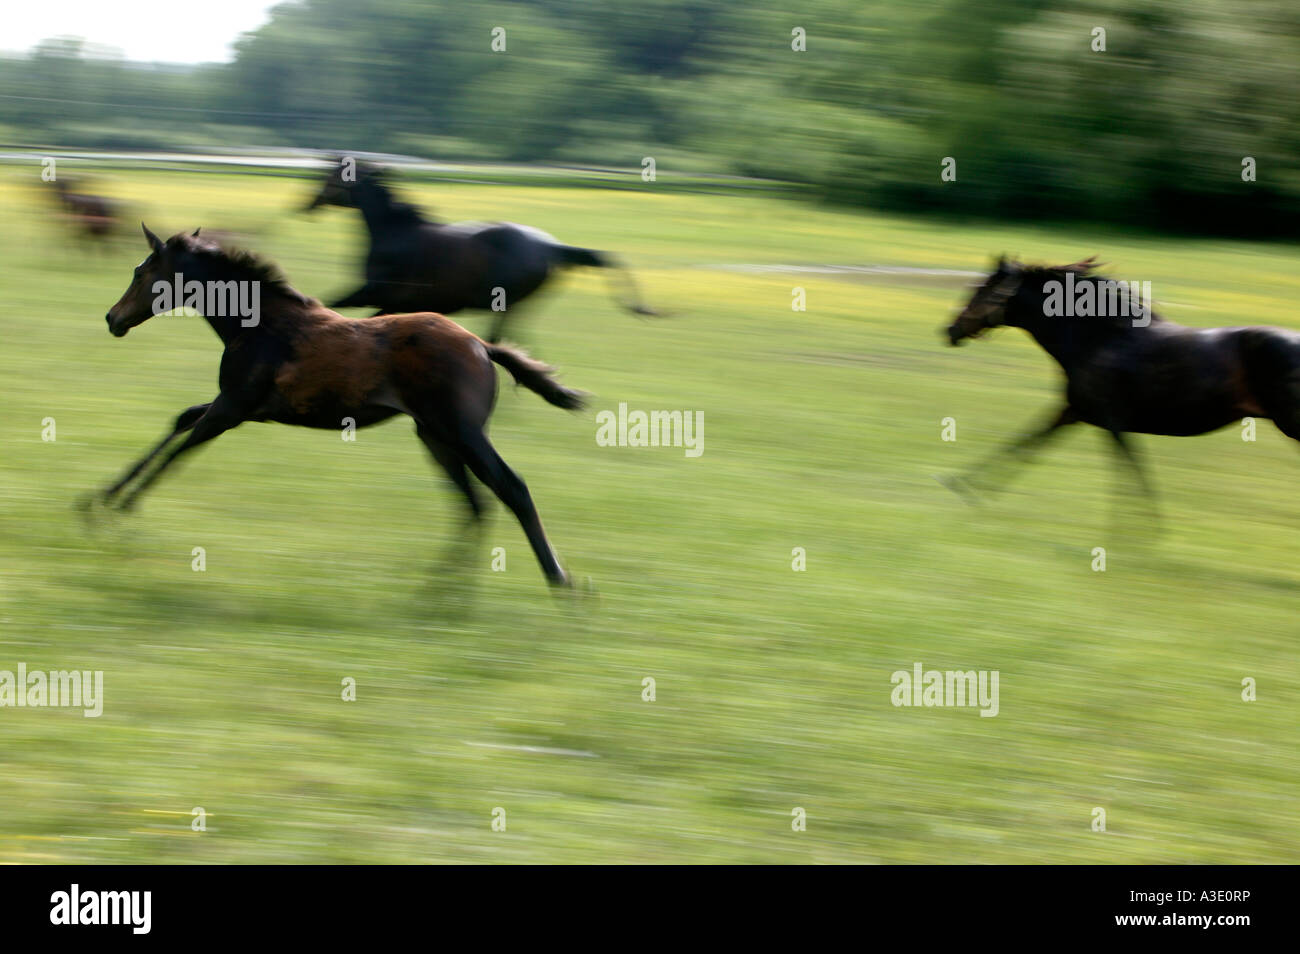 Young Horses Running On Thoroughbred Horse Farm In Chester County,  Pennsylvania, USA - Stock Image